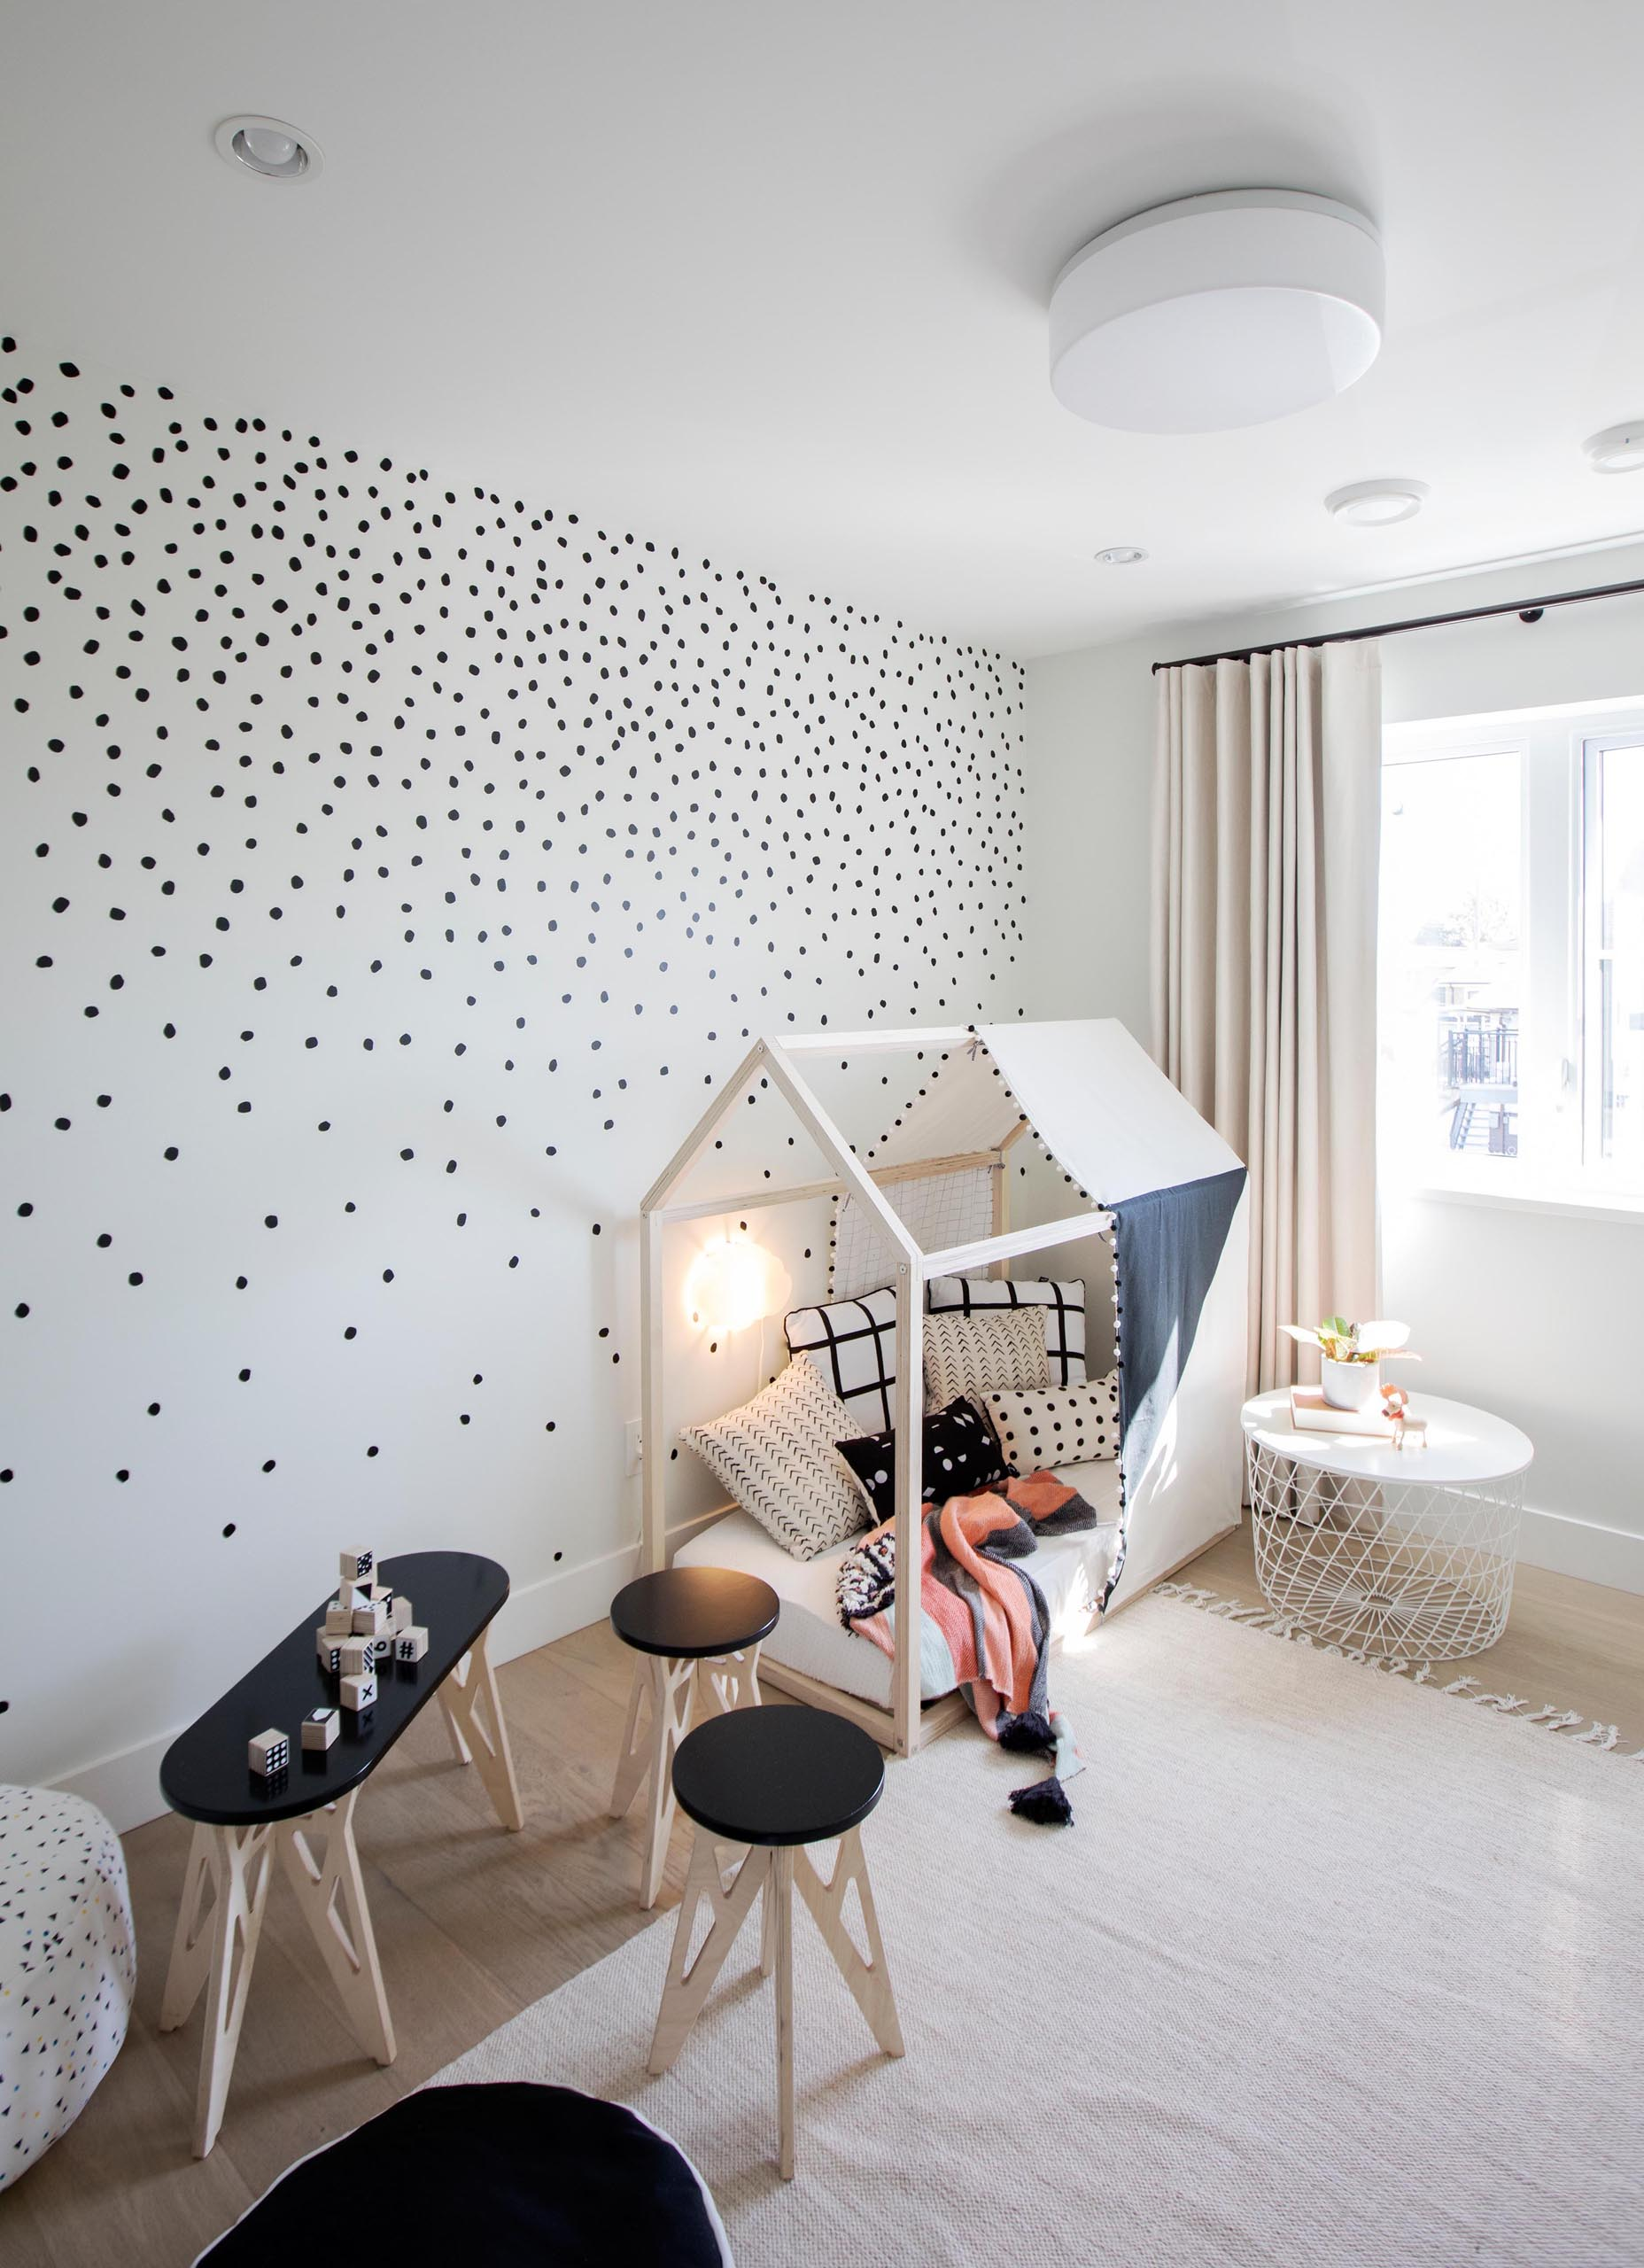 A modern kids bedroom has a playful appearance, with a polka dot pattern on the walls, a small tent, and kid-sized furniture with a table, stools, and poufs.